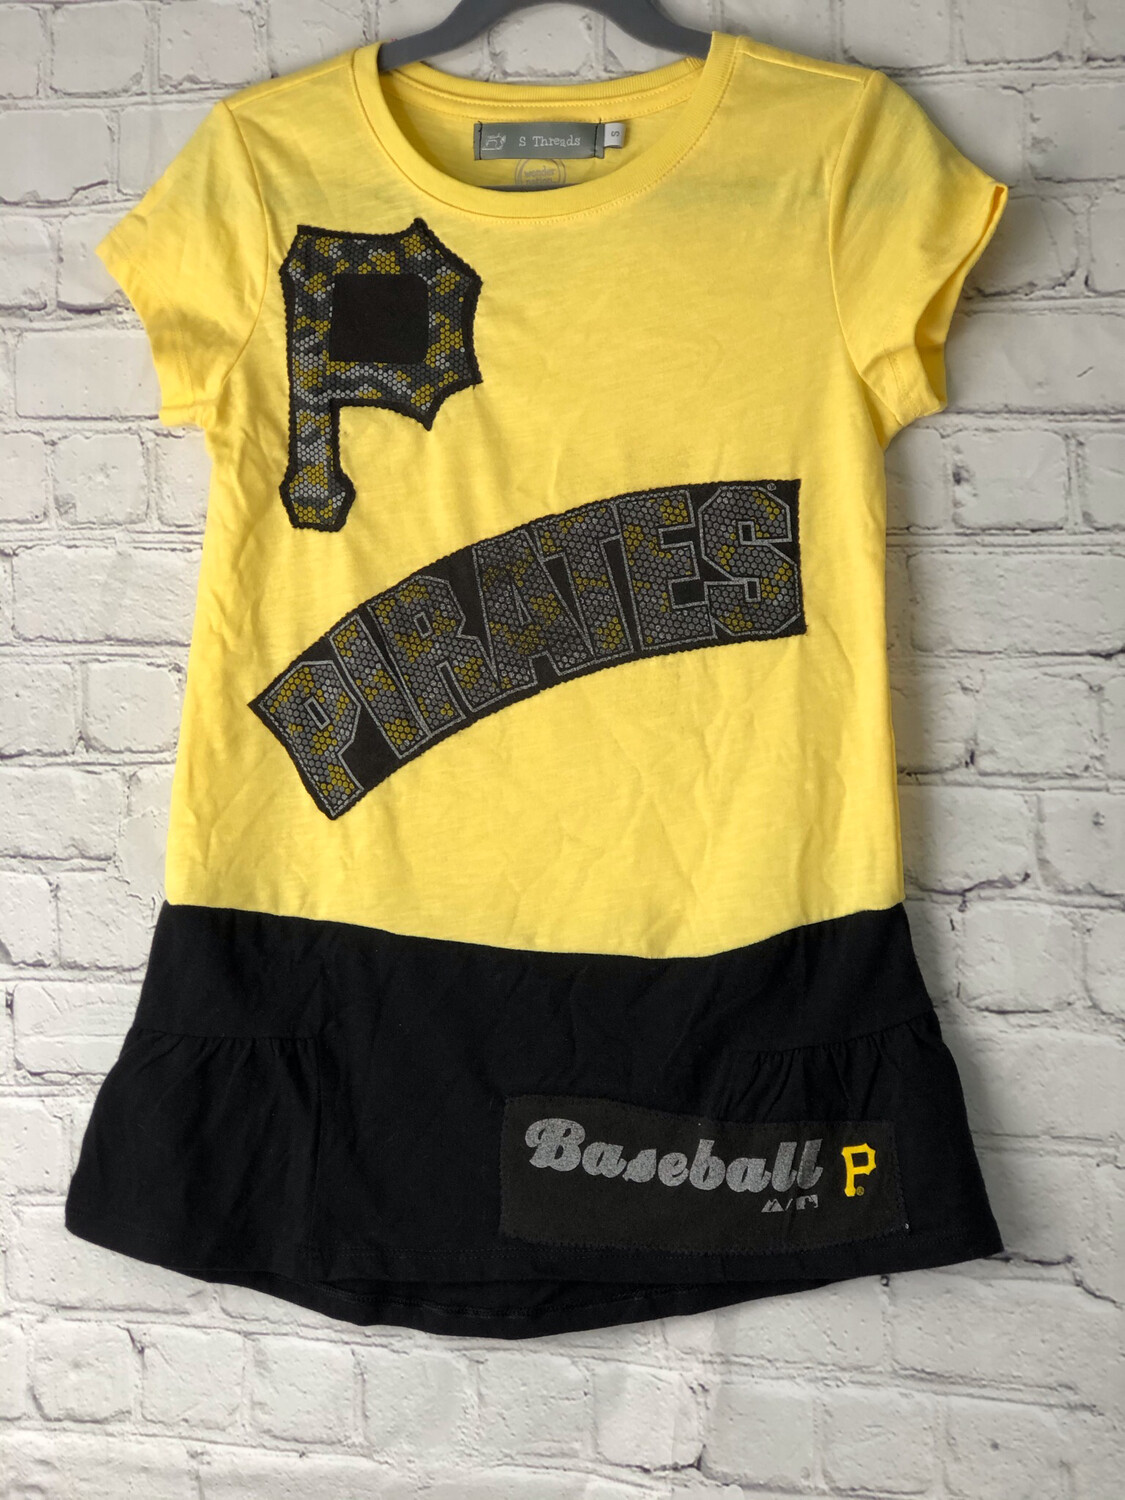 S Threads Kids Upcycled Recycled Short Sleeve Pirates Baseball Shirt Size Child Small